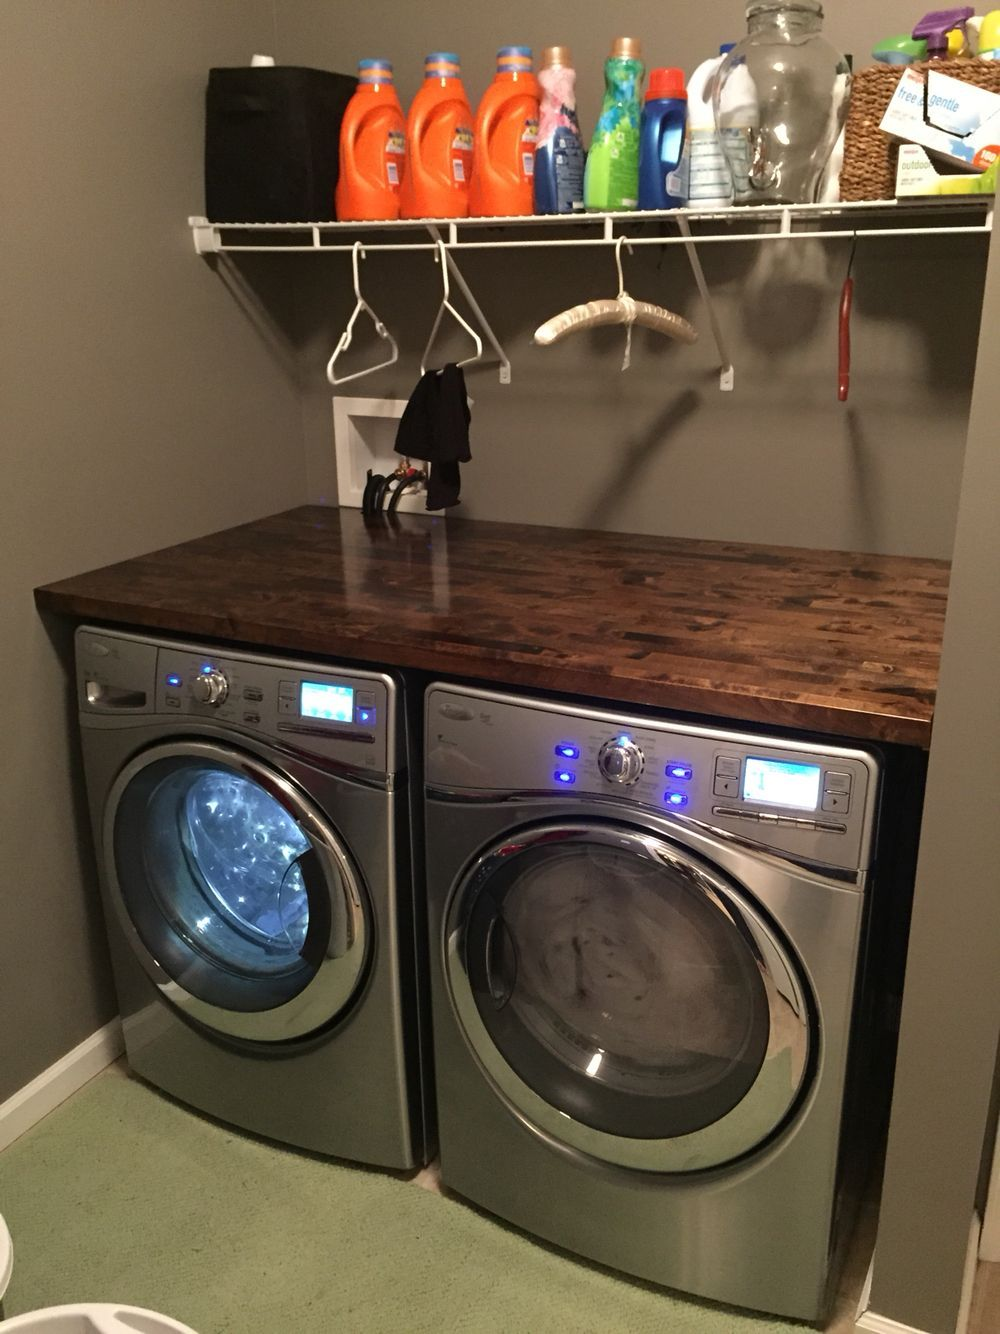 how to reset whirlpool washer top load